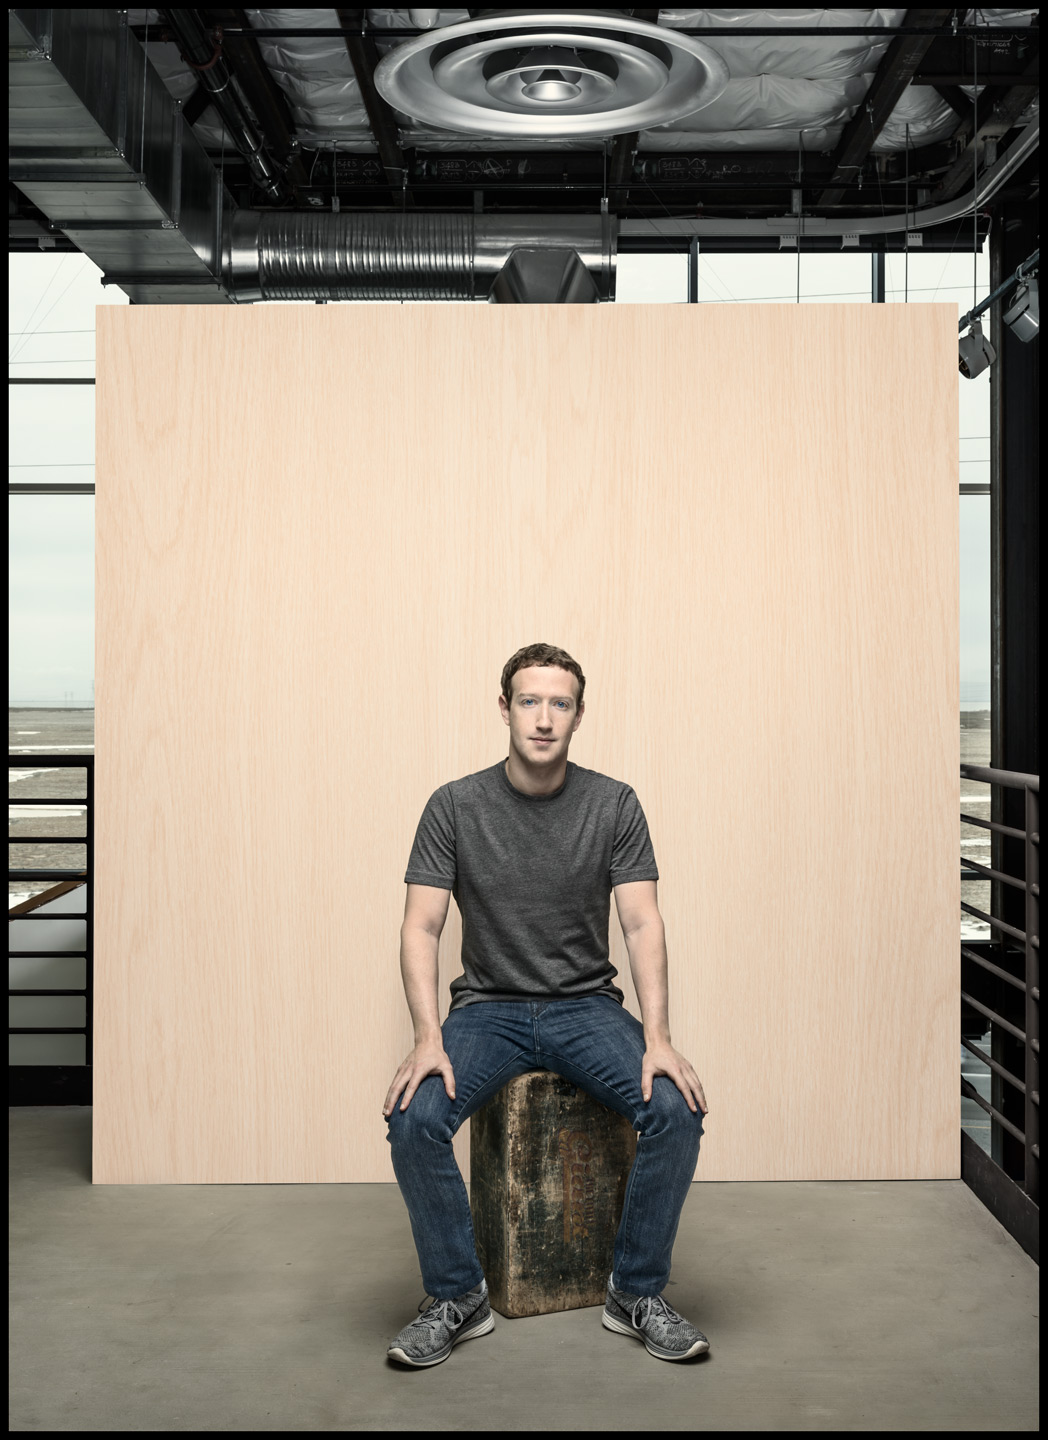 Winters_Wired_Mark_Zuckerberg_4407_4412